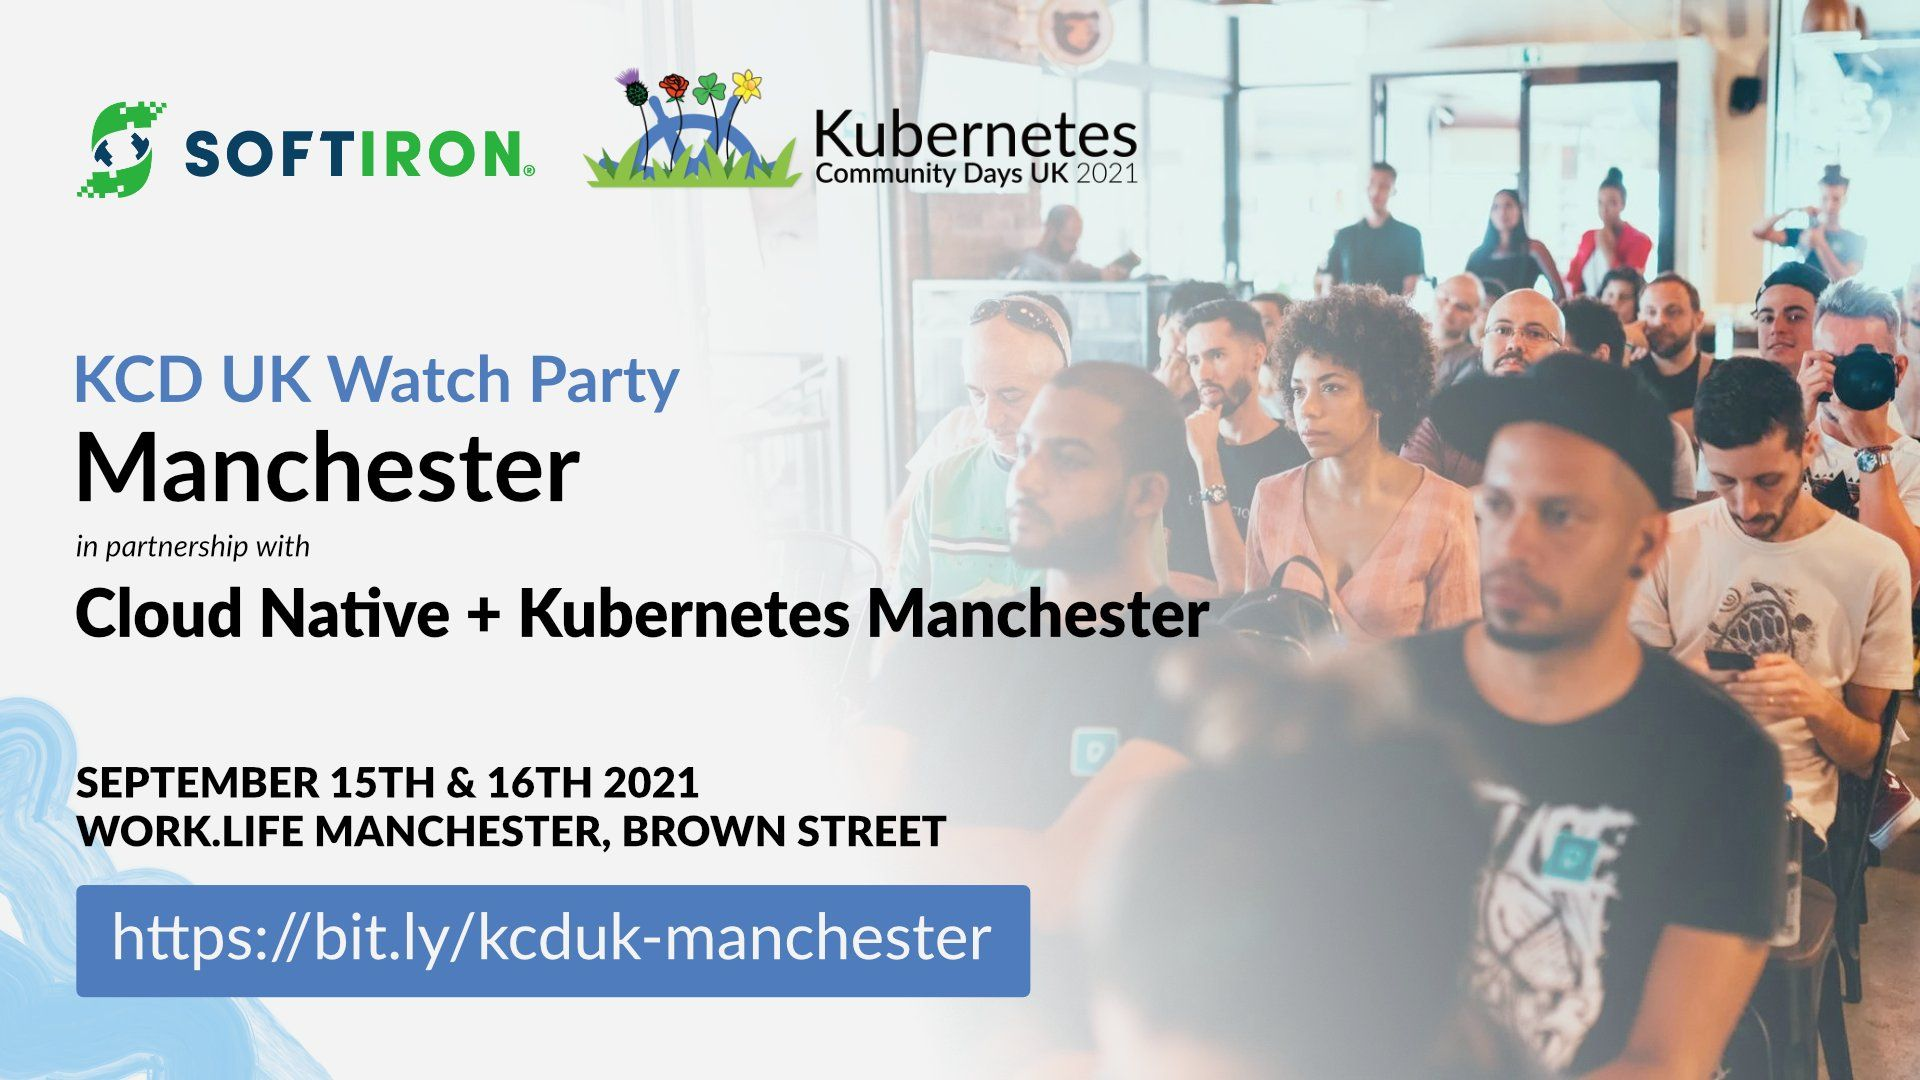 KCDUK Watch Party